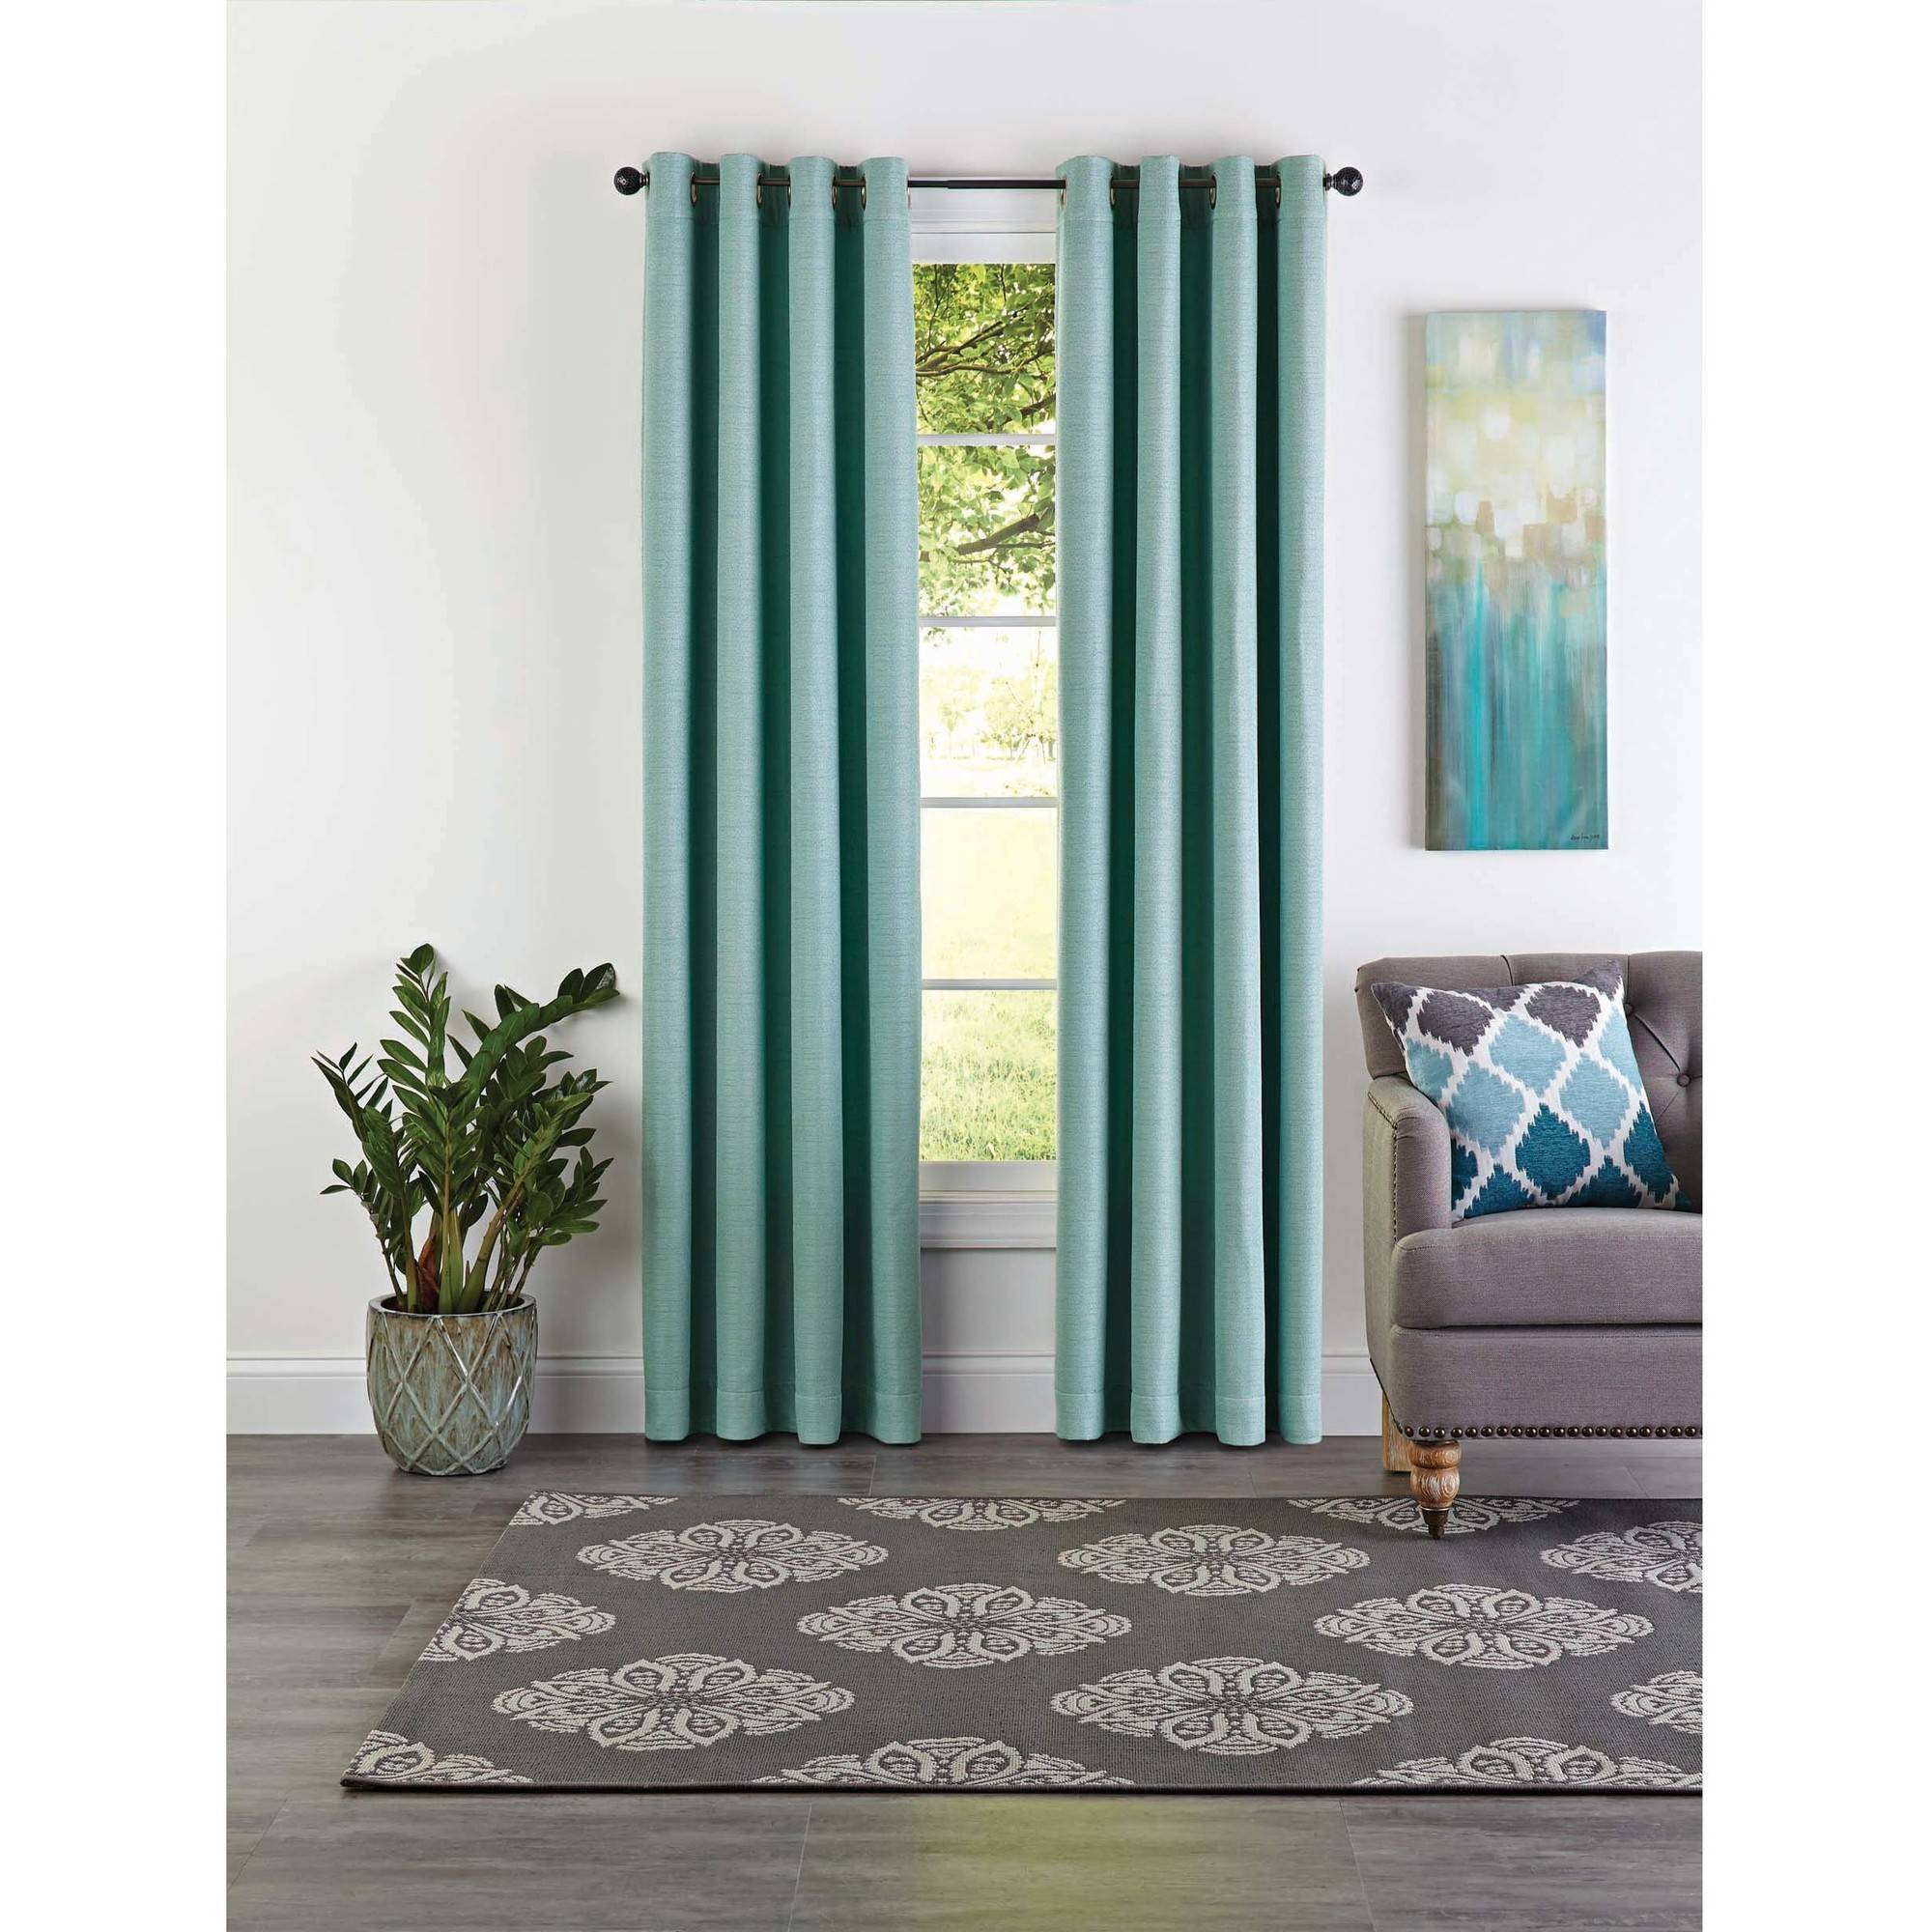 Better Homes and Gardens Basketweave Curtain Panel, Aqua by